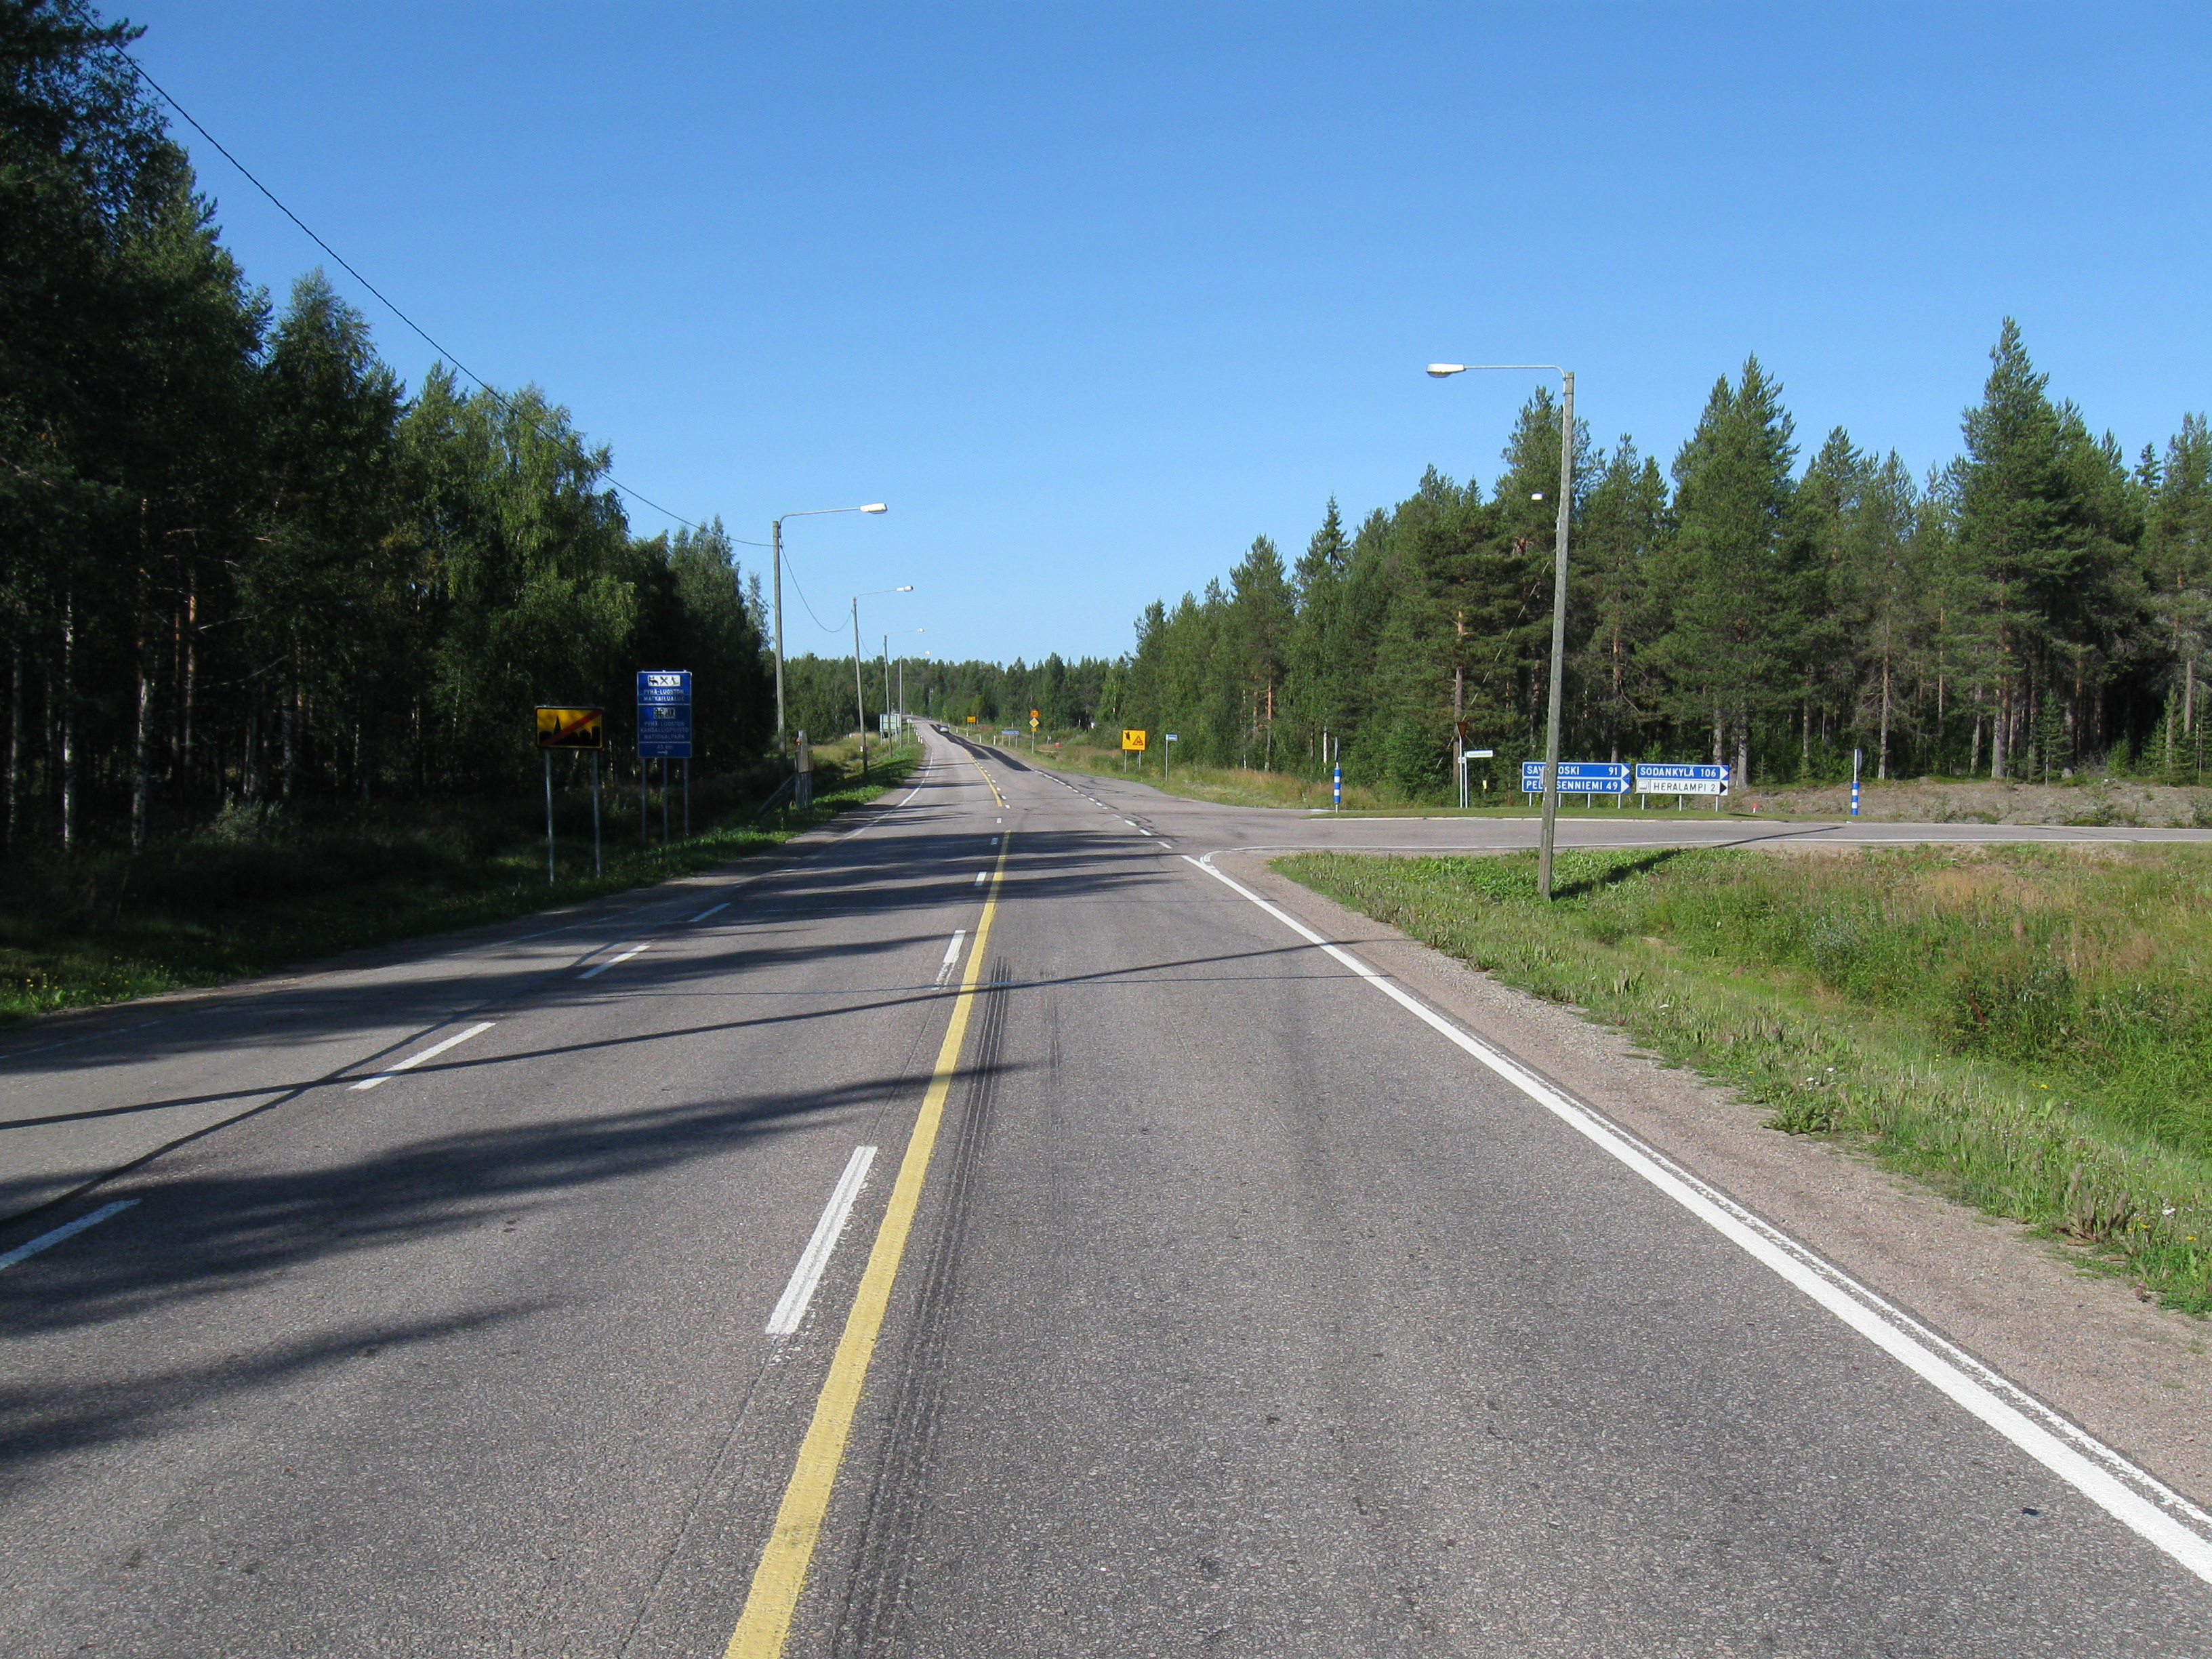 File:Main road 82 in Kemijärvi.JPG - Wikimedia Commons